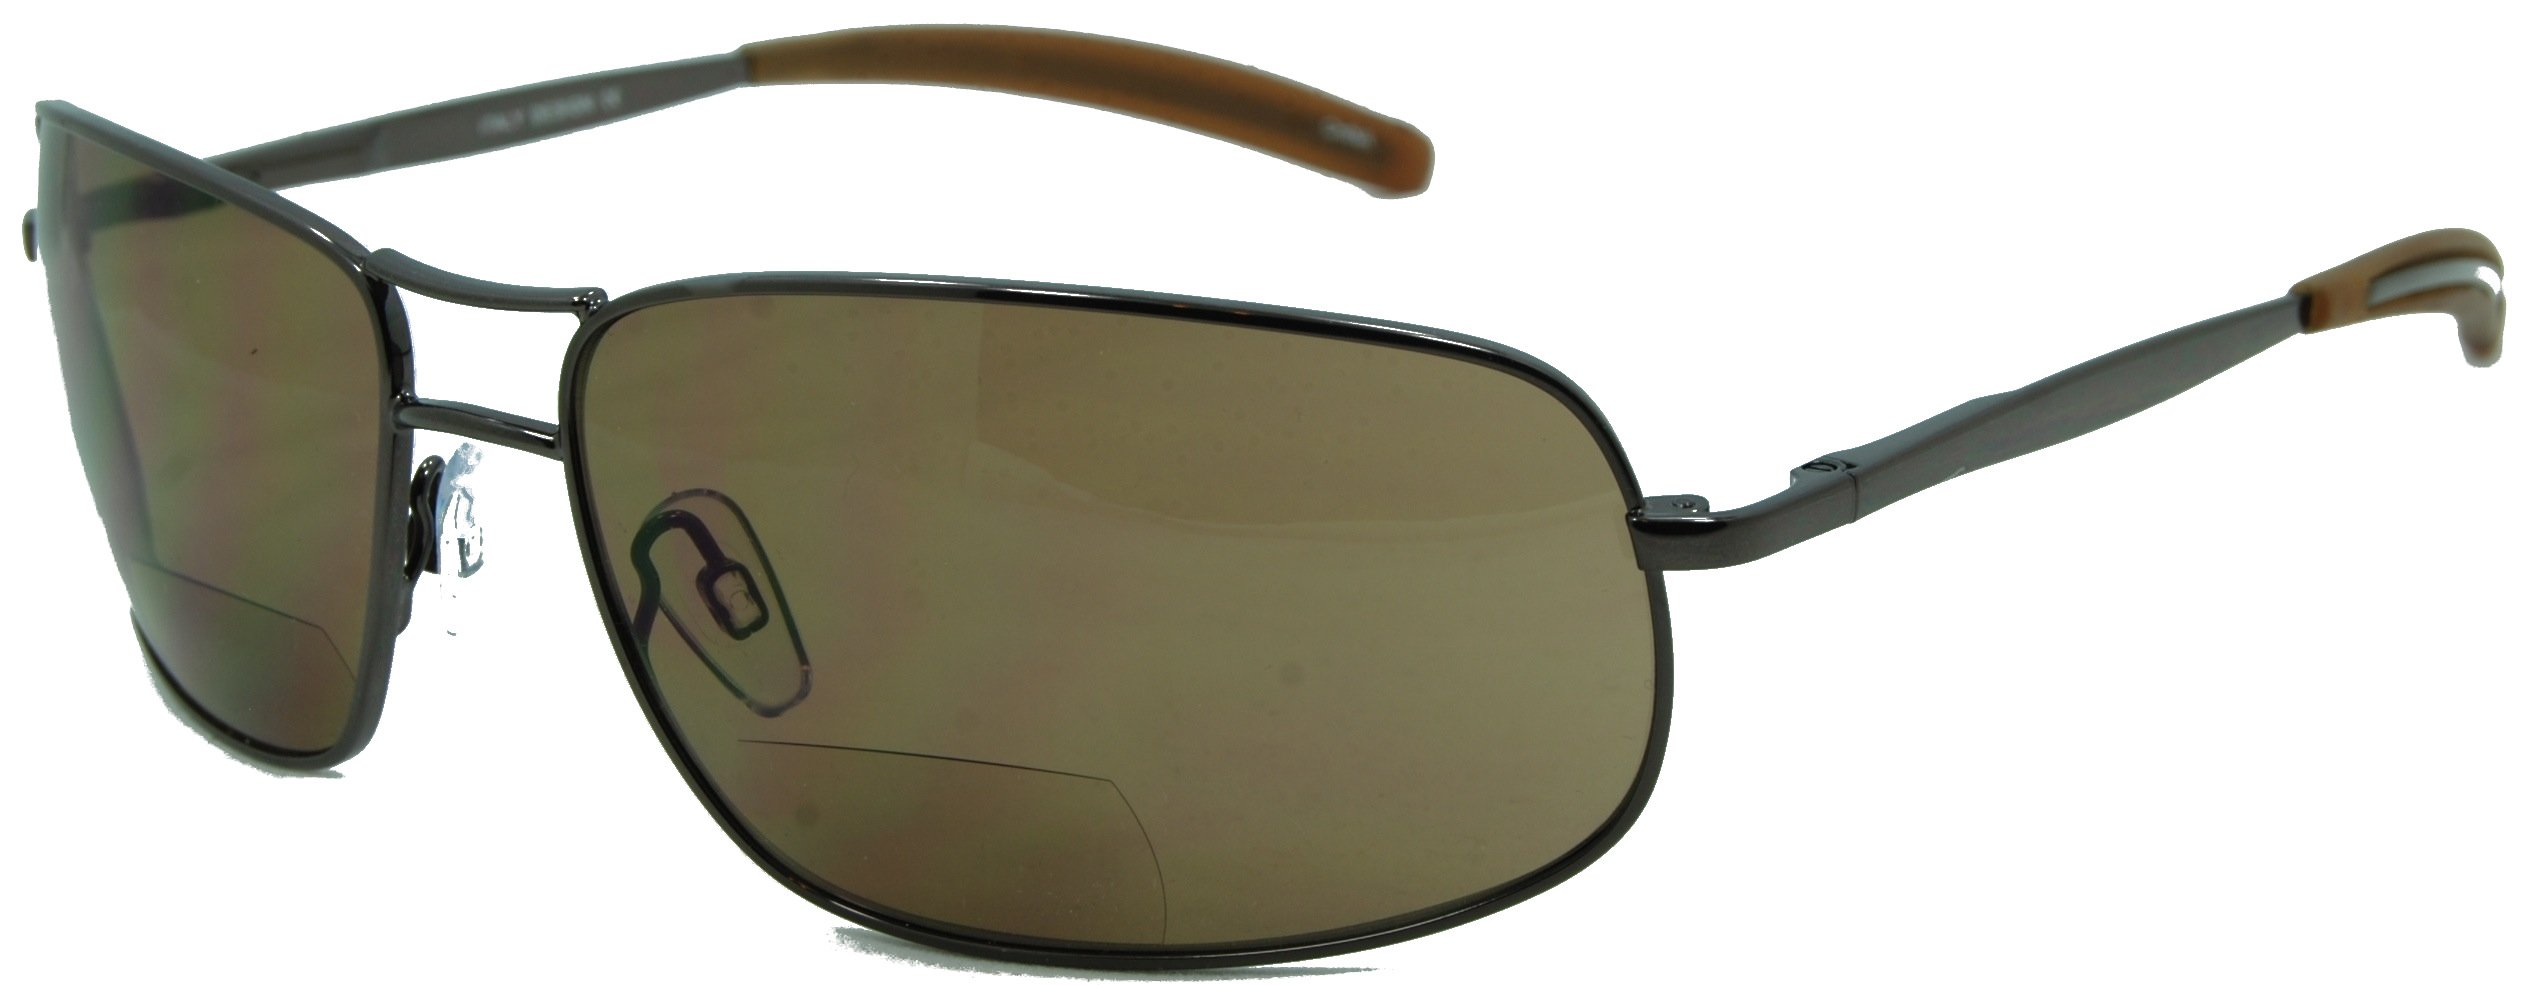 In Style Eyes Ace in the Hole, Nearly No Line Bifocals Sunglasses Work Perfectly for any Outdoor Activity/Brown 1.50 by In Style Eyes